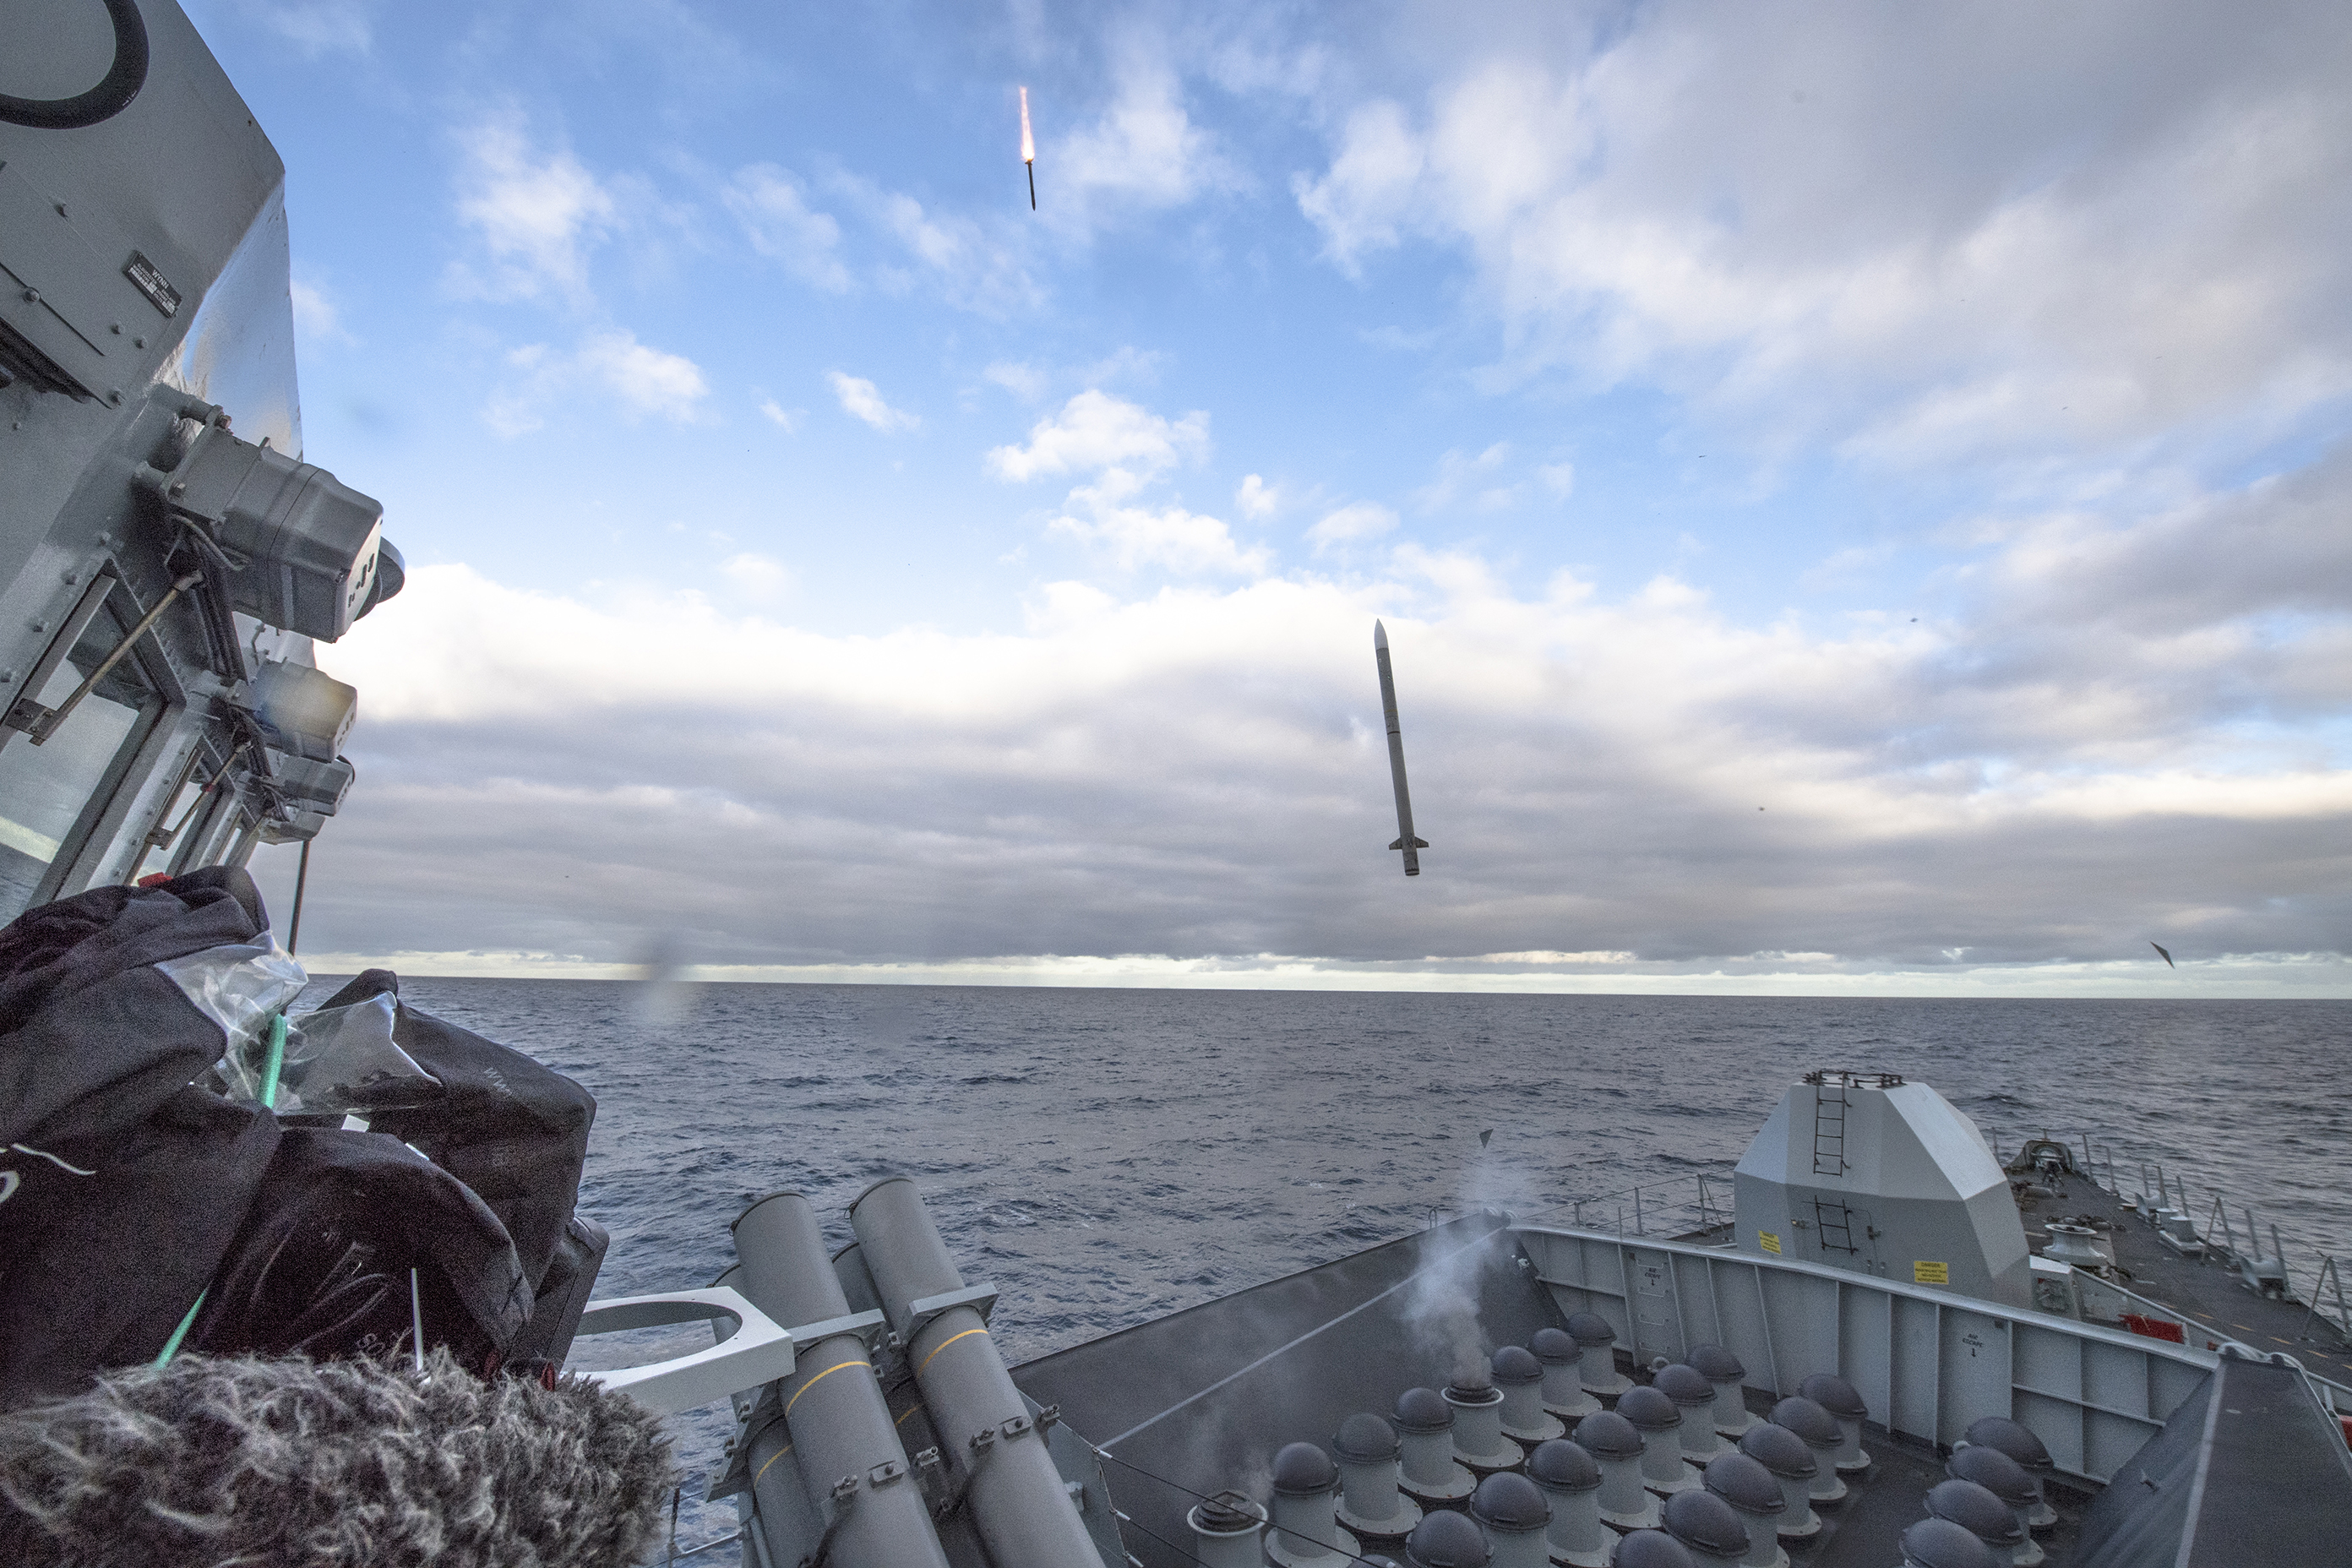 Royal Navy completes Sea Ceptor firing trials - MBDA